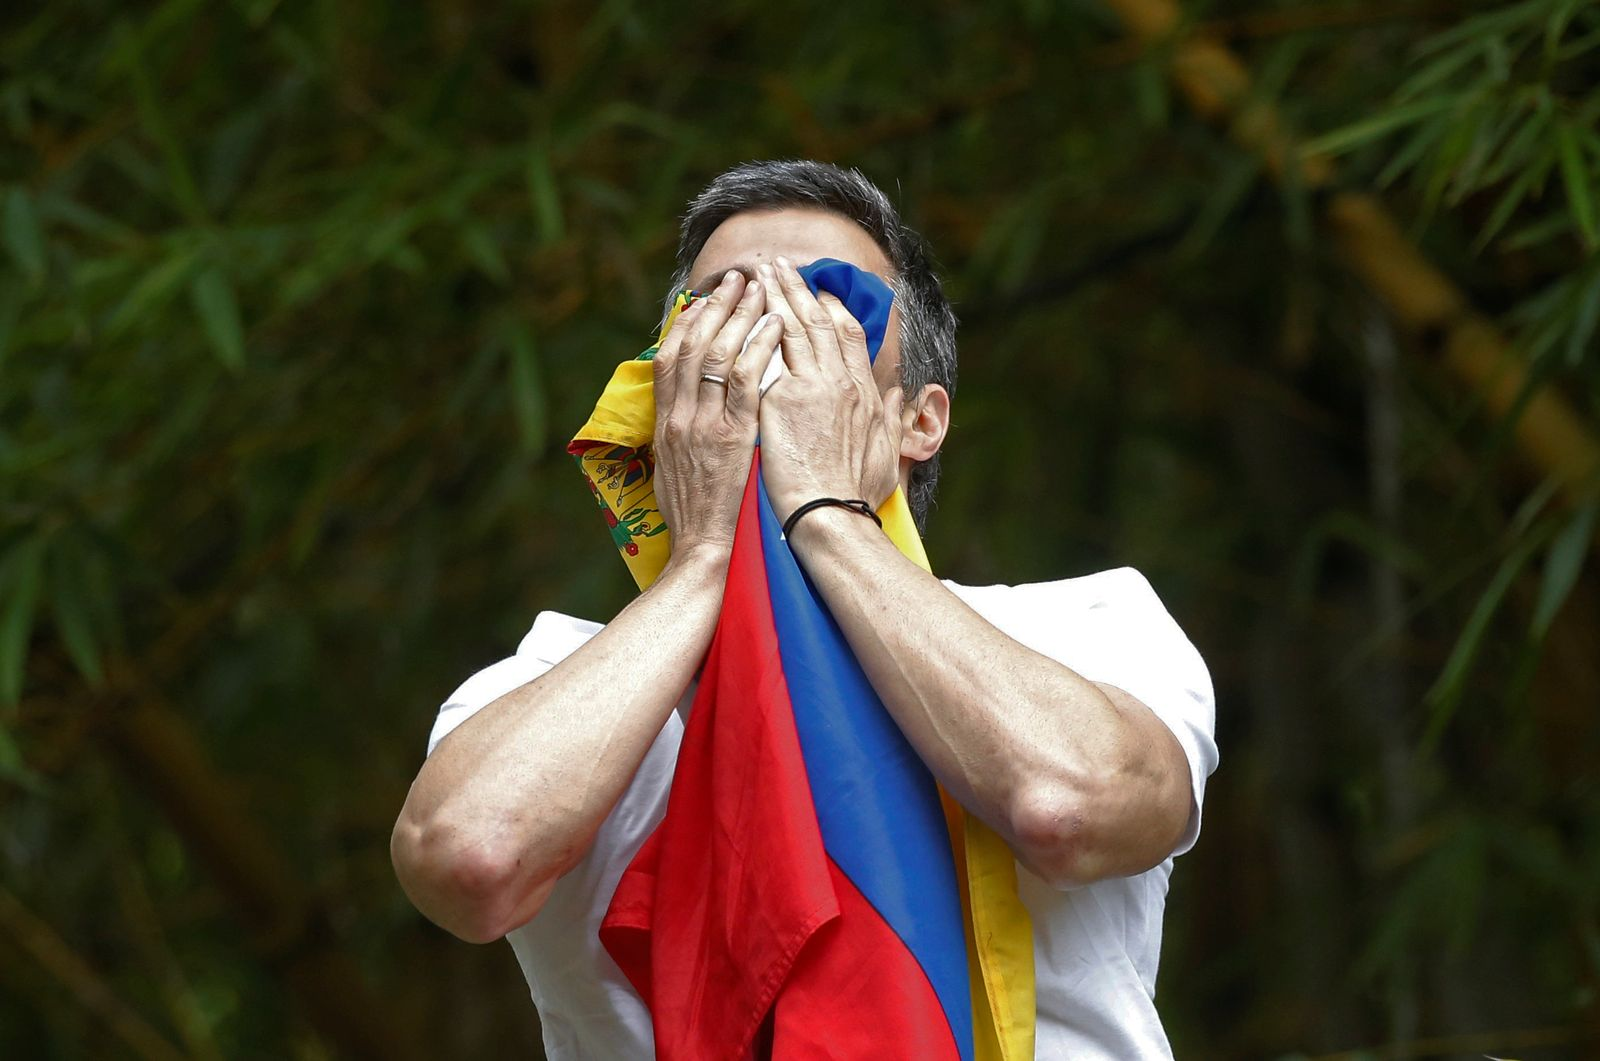 Venezuela's opposition leader Leopoldo Lopez, who has been granted house arrest after more than three years in jail, salutes supporters, in Caracas